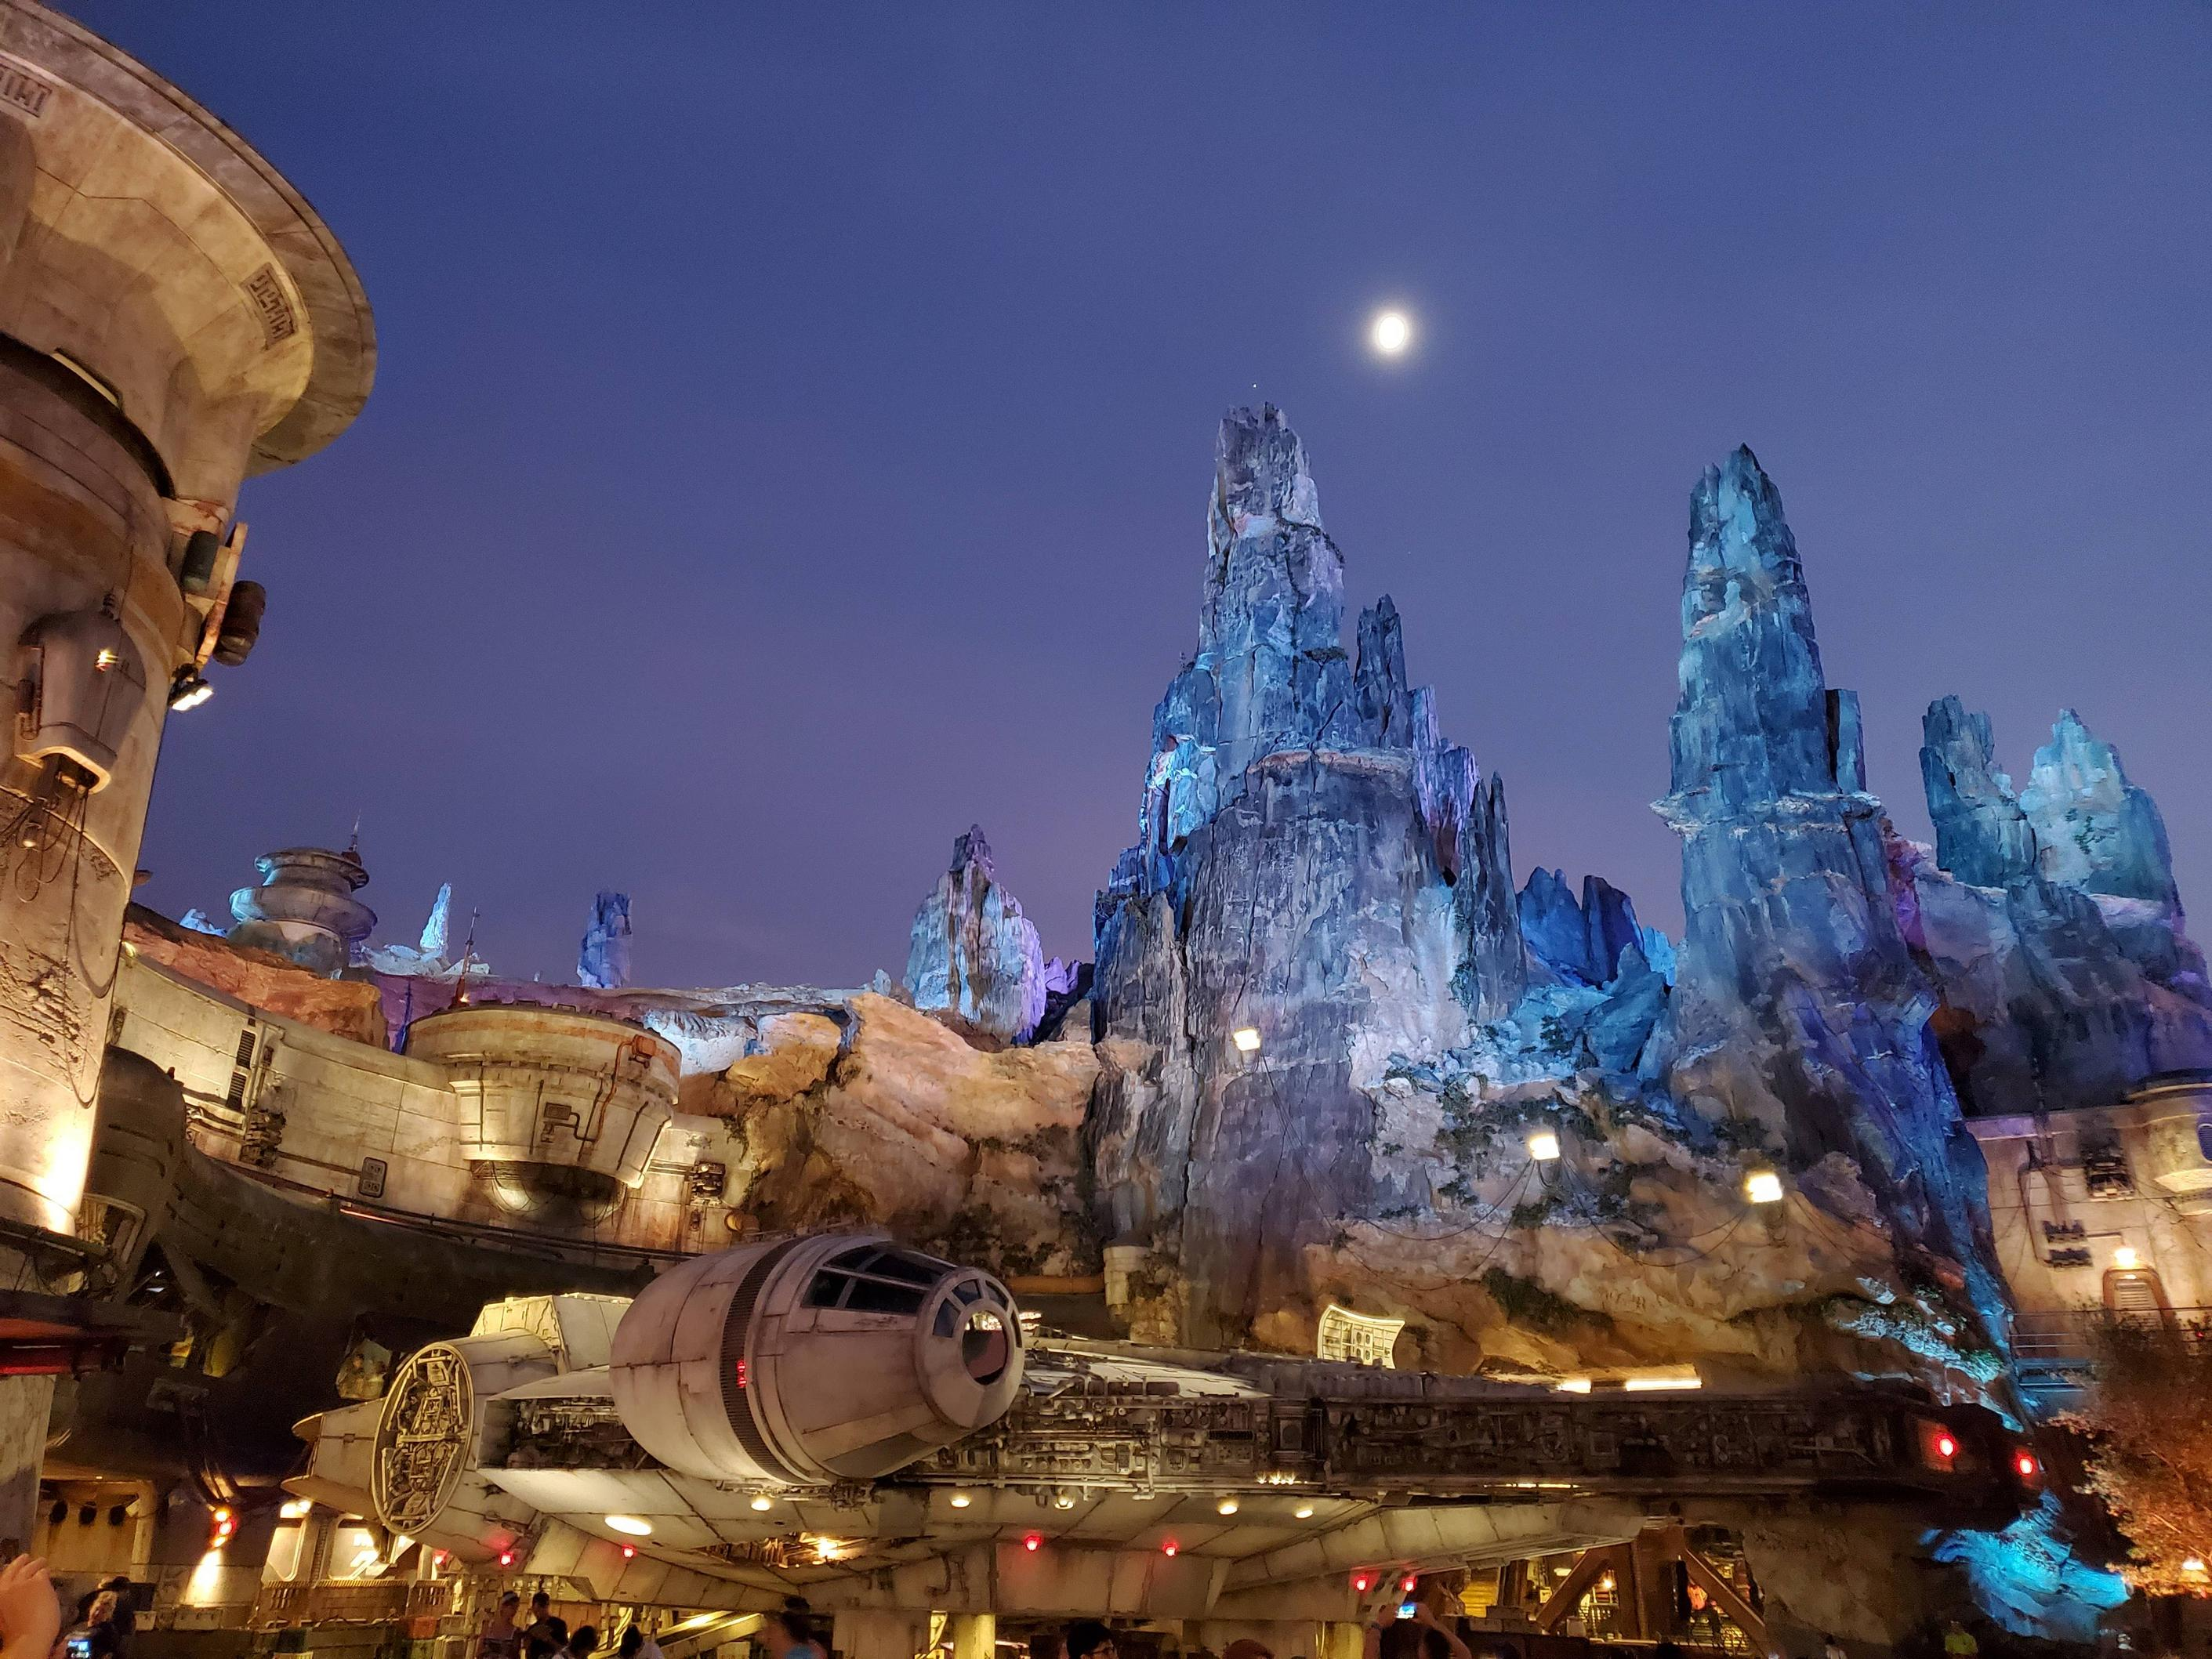 The Millennium Falcon at Galaxy\'s Edge Orlando at night is quite a sight